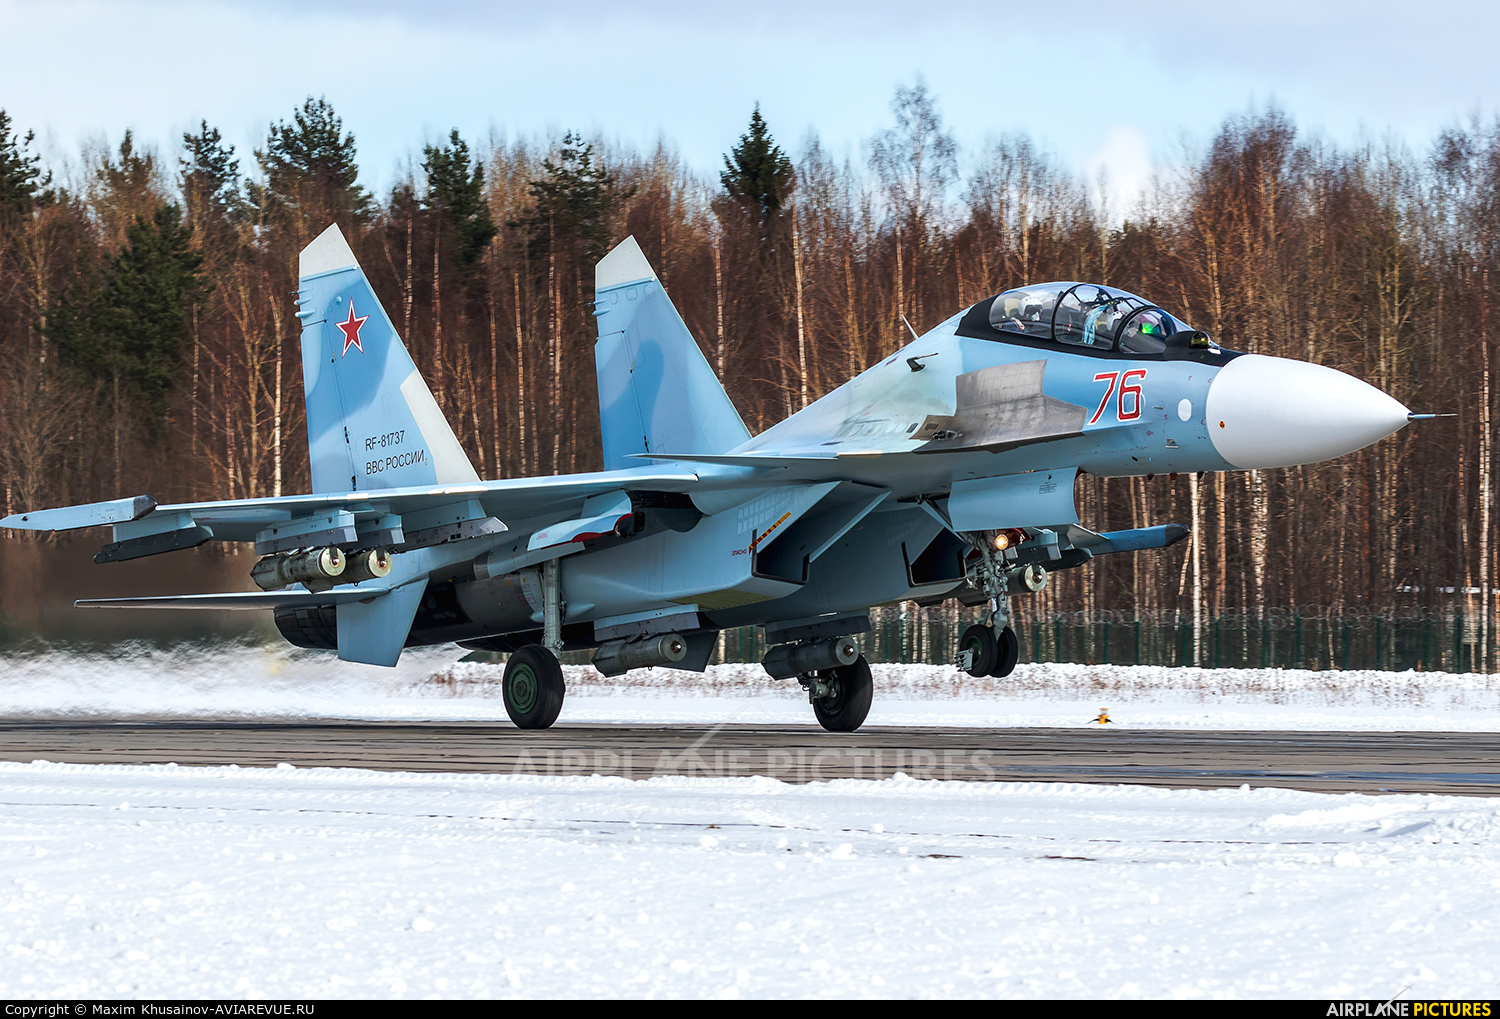 Russia - Air Force RF-81737 aircraft at Undisclosed Location